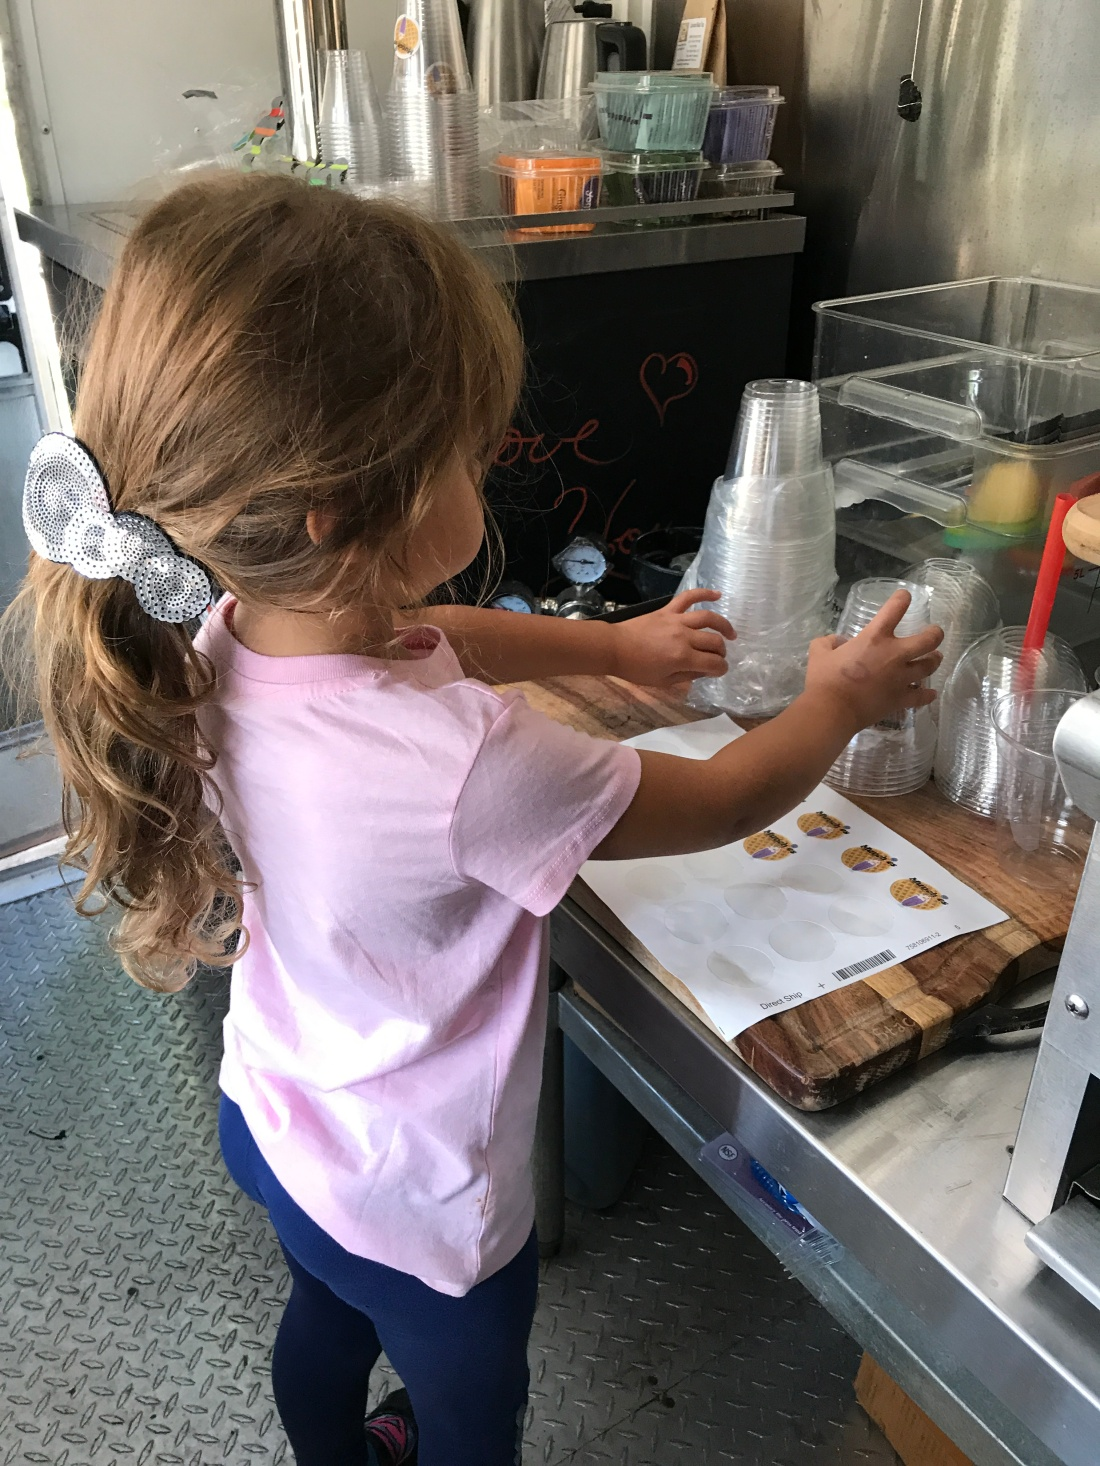 A girl puts stickers on cups in a food trailer.